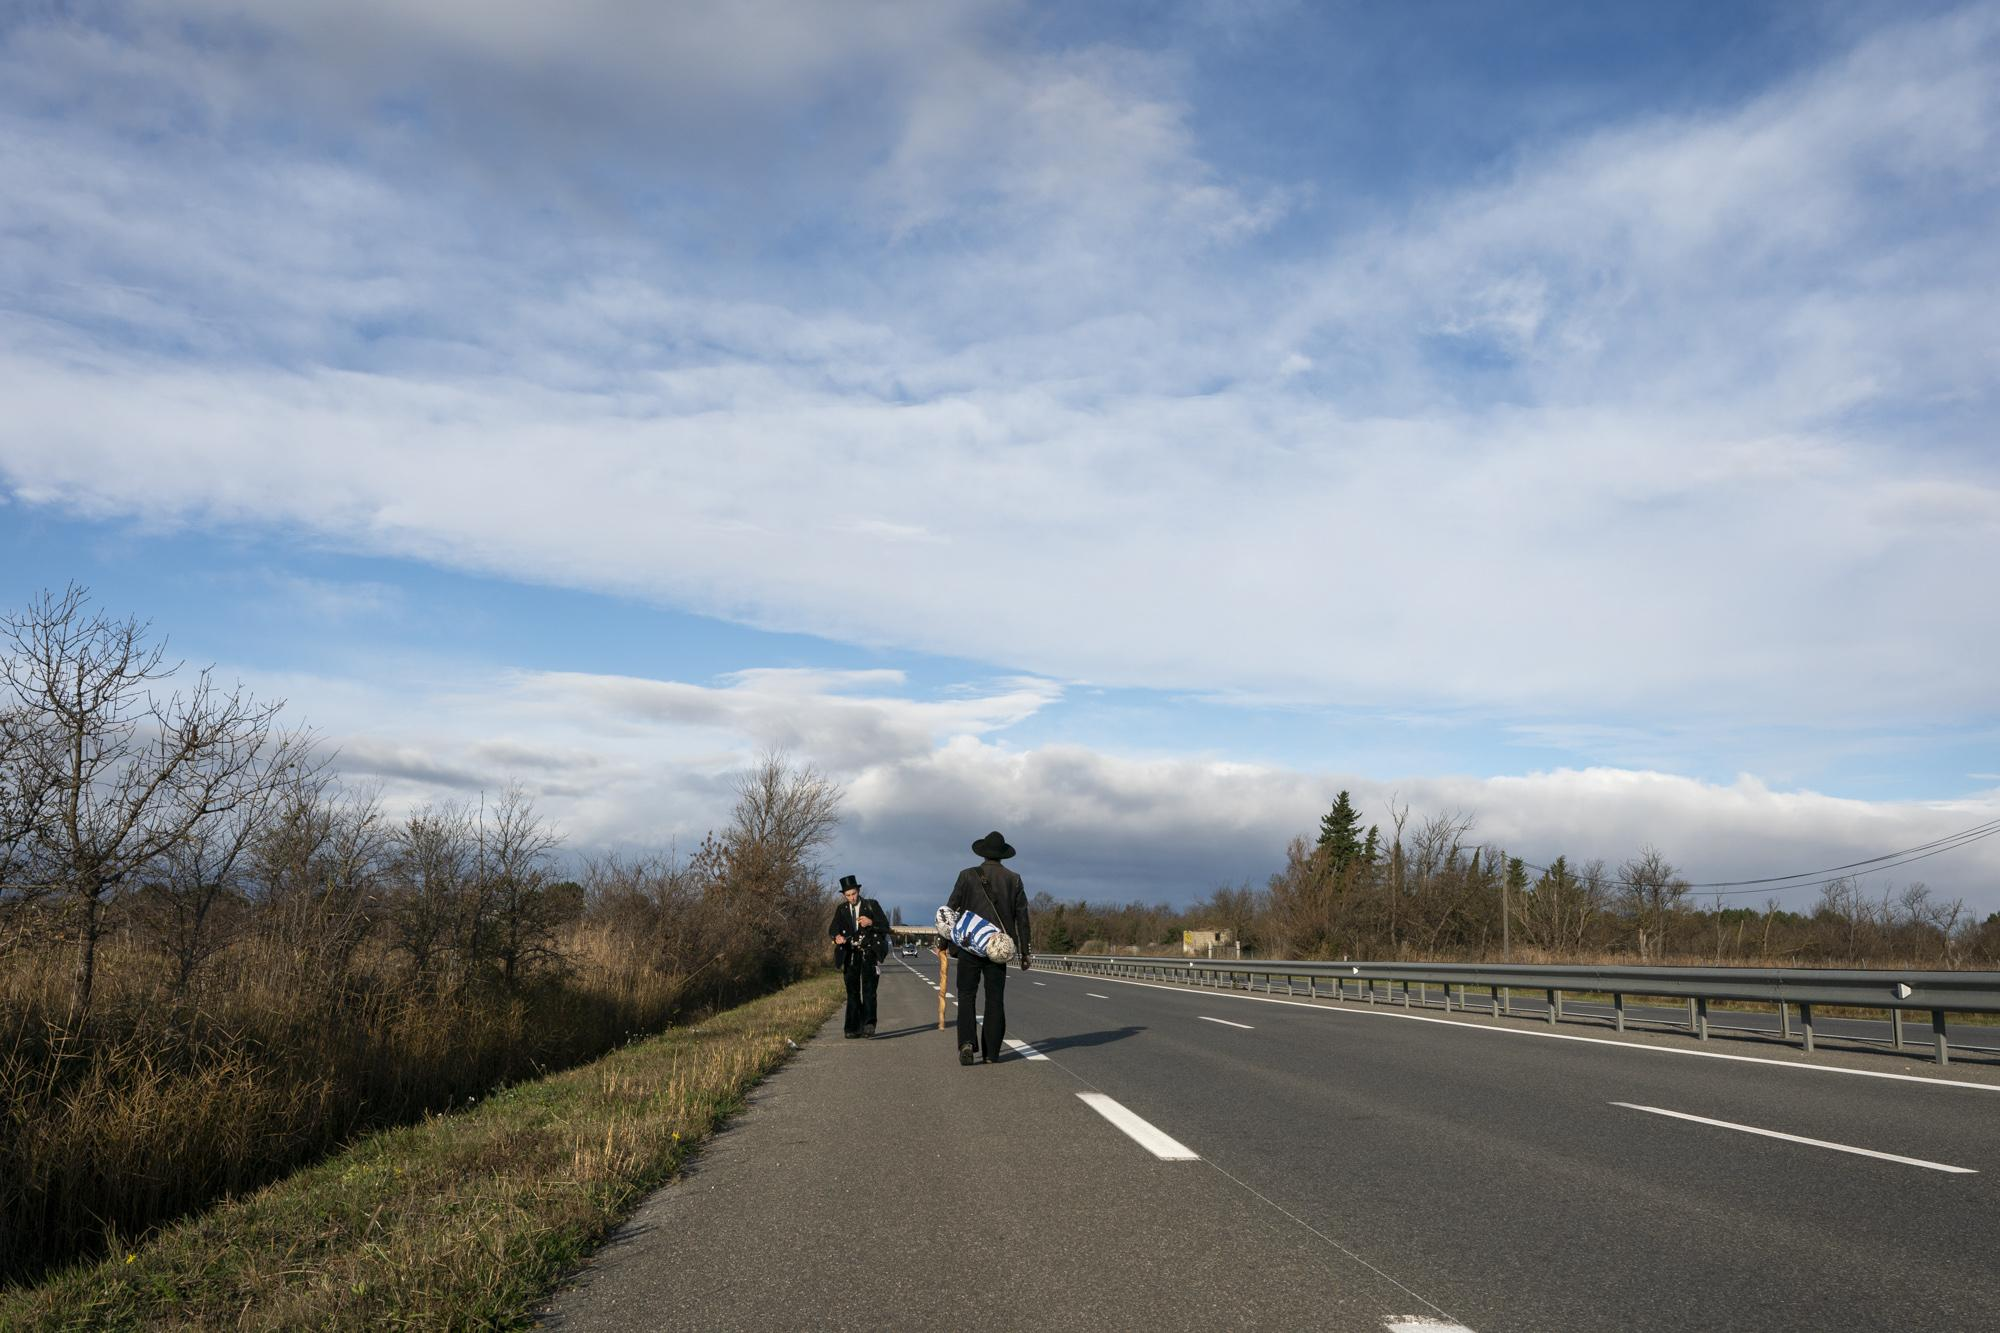 Matthias (L) and Ben walk along the empty road from Narbonne to Gruissan as they aim to reach the Mediterranean sea and watch out for a car to hitch-hike, in Narbonne, on December 6, 2020.